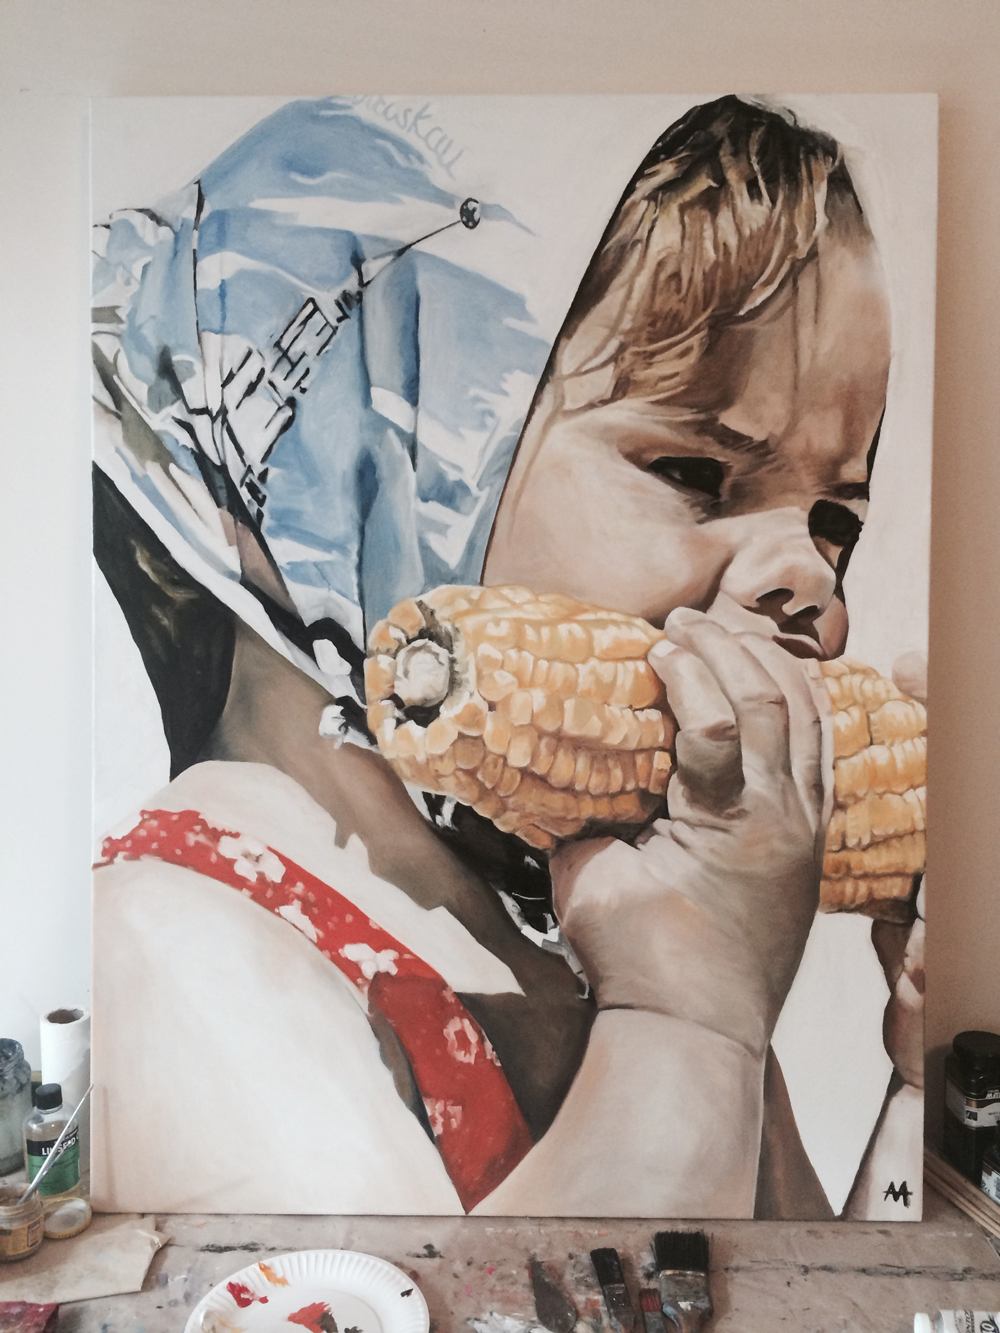 Corn Kid by Adoni Astrinakis